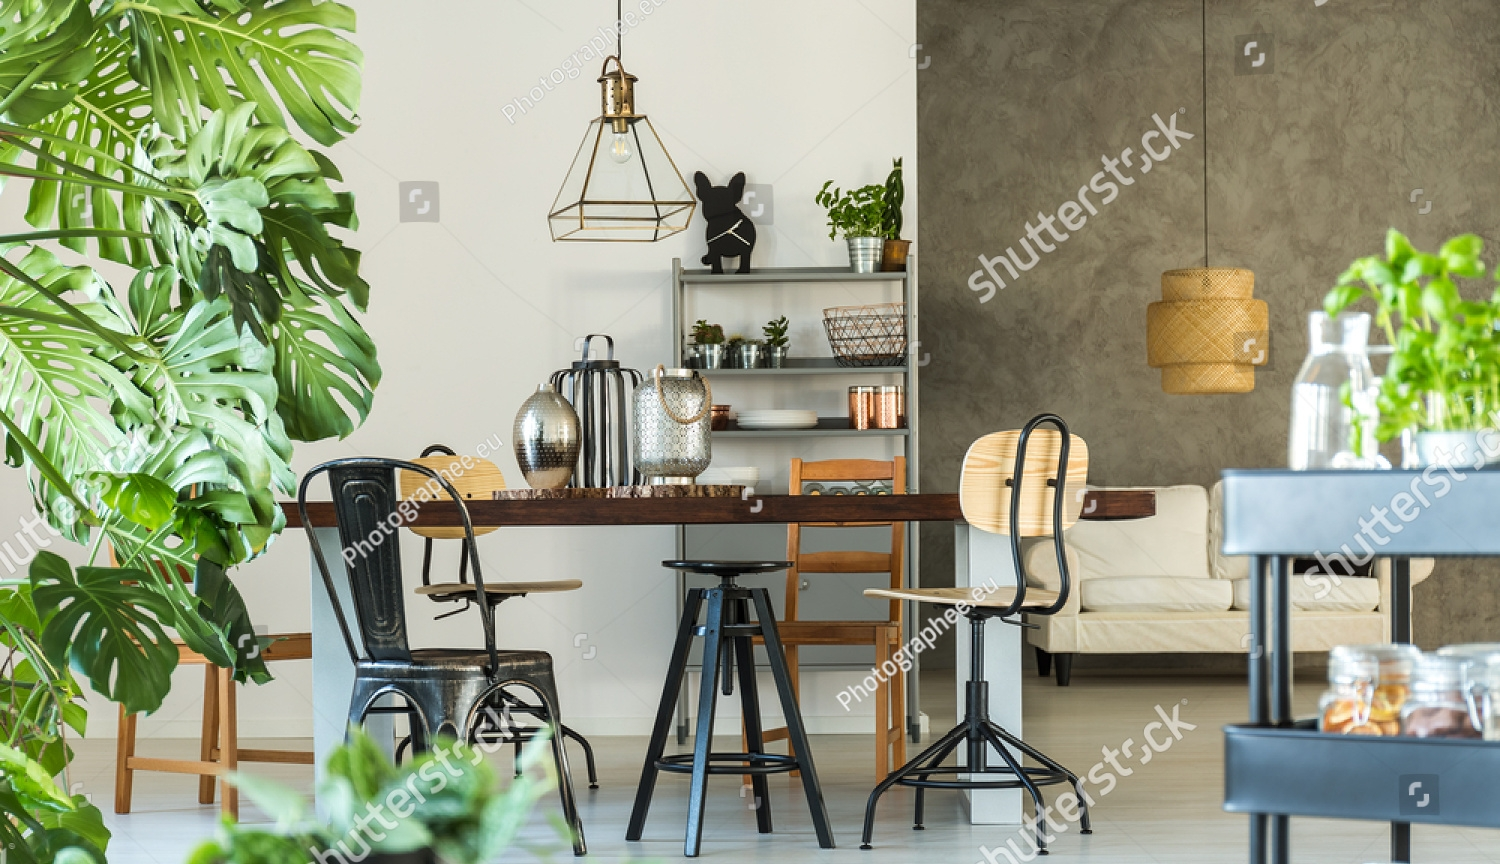 stock-photo-modern-dining-room-with-monstera-plant-carpet-and-kitchen-cart-594920912.jpg